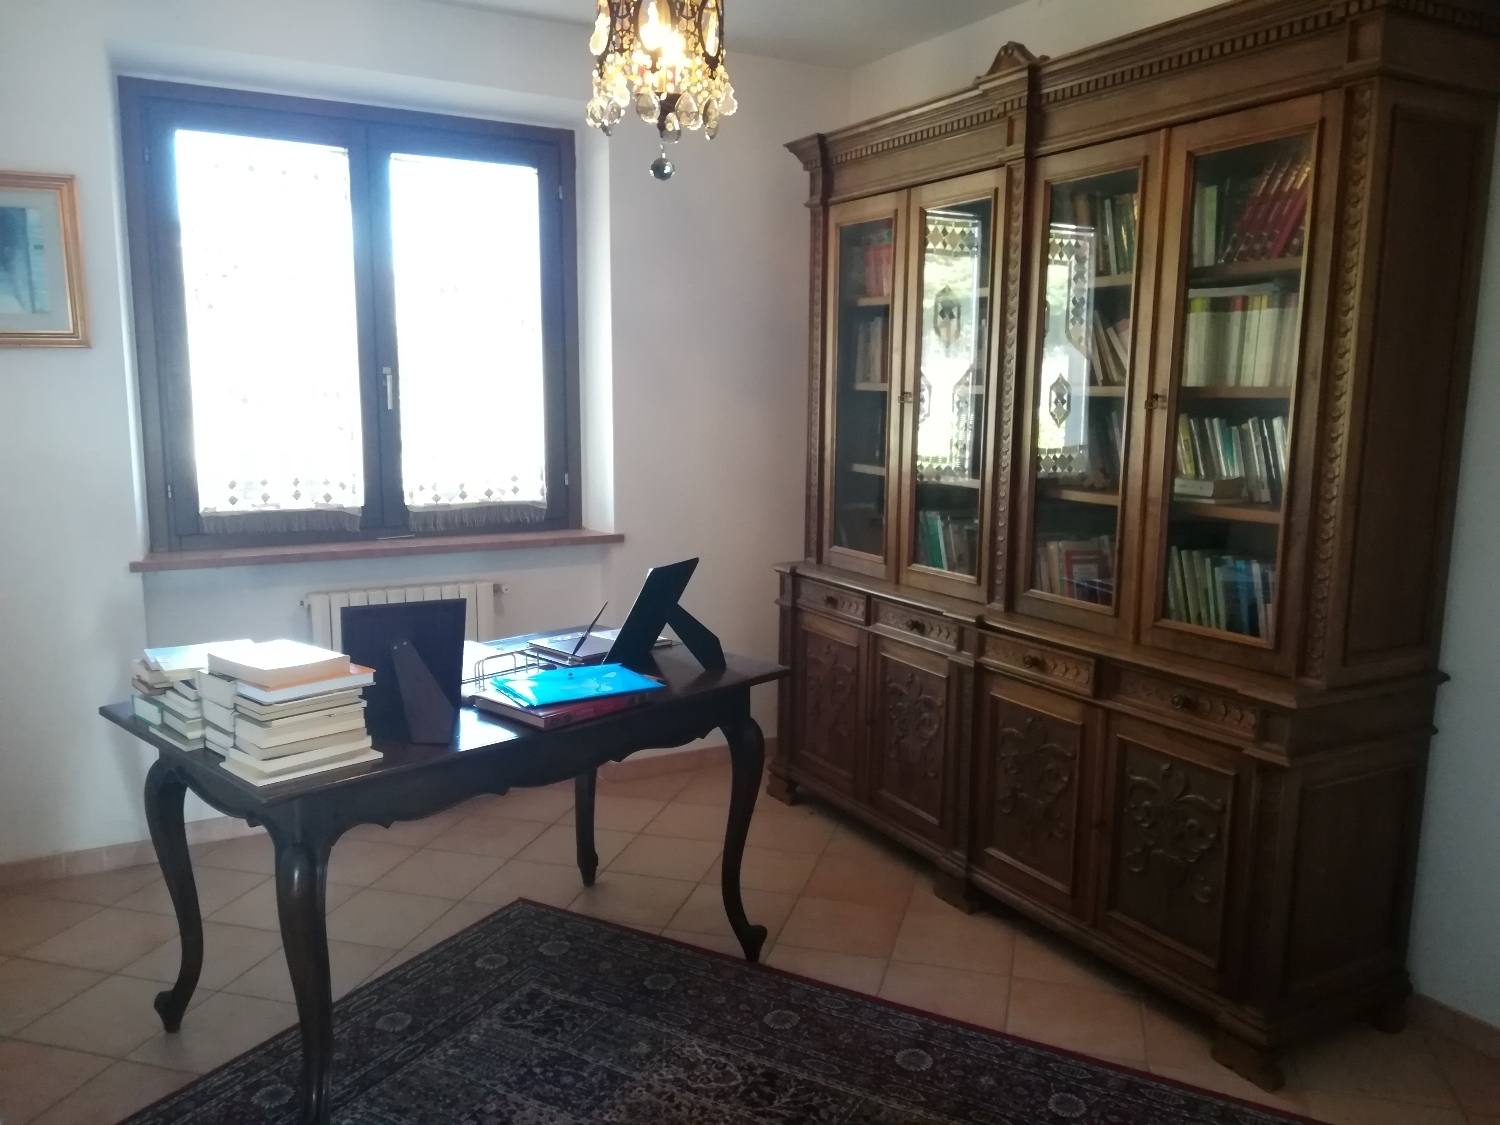 Country Houses Country Houses for sale Penne (PE), Villa Valentino - Penne - EUR 432.293 480